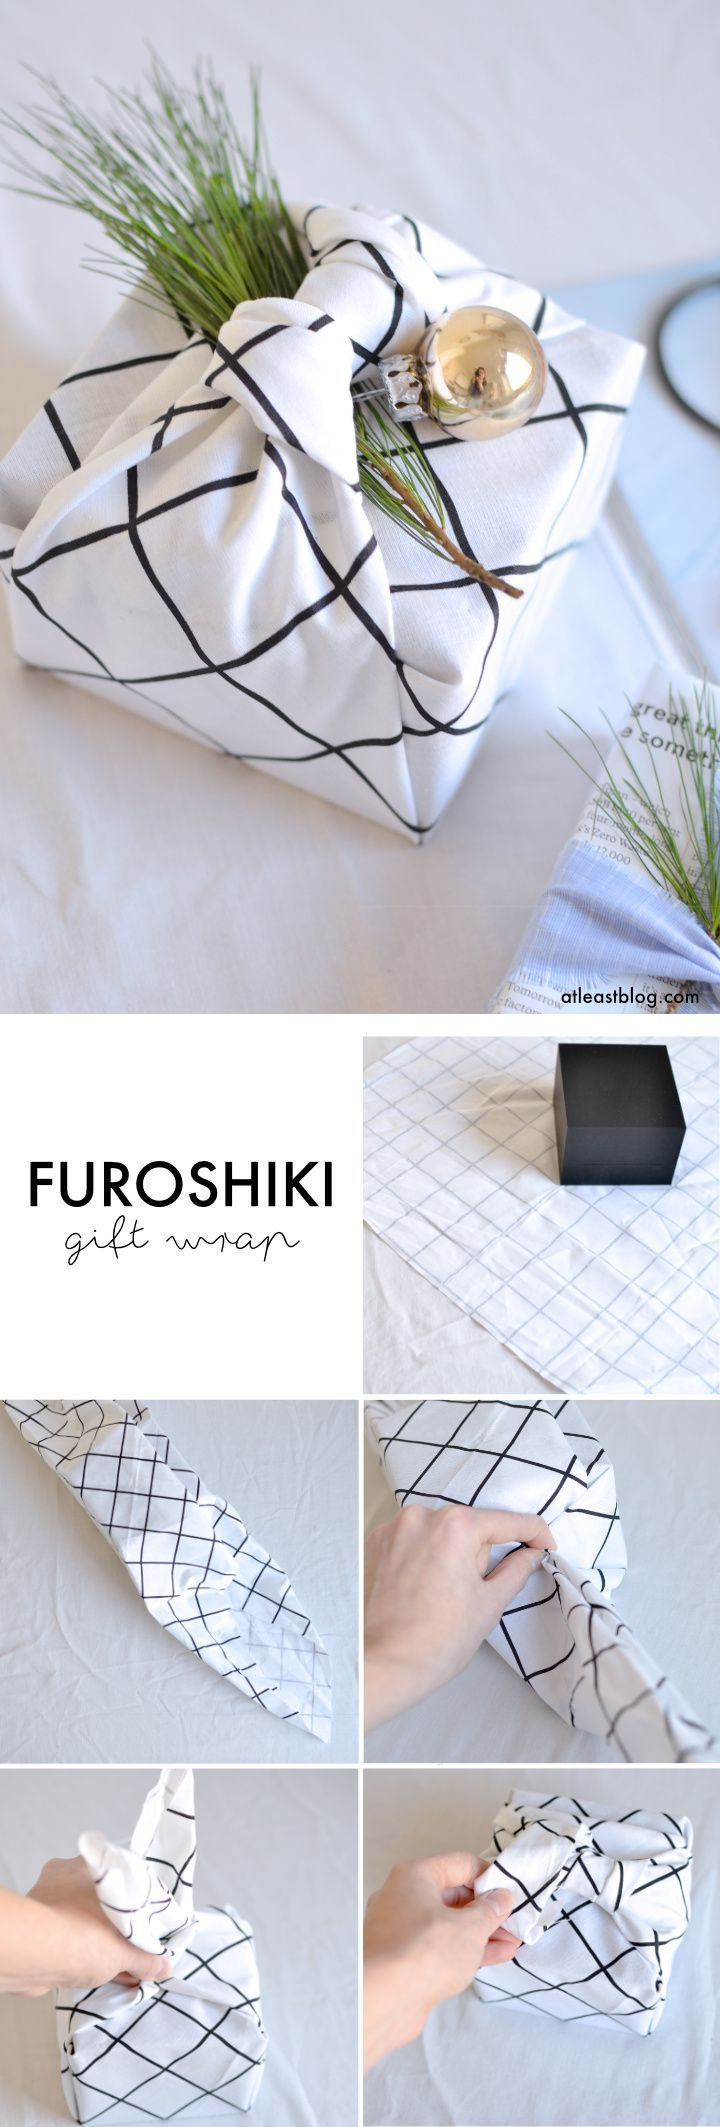 furoshiki geschenkverpackung selber machen so verpackst du deine geschenke in stoff gift wrap. Black Bedroom Furniture Sets. Home Design Ideas